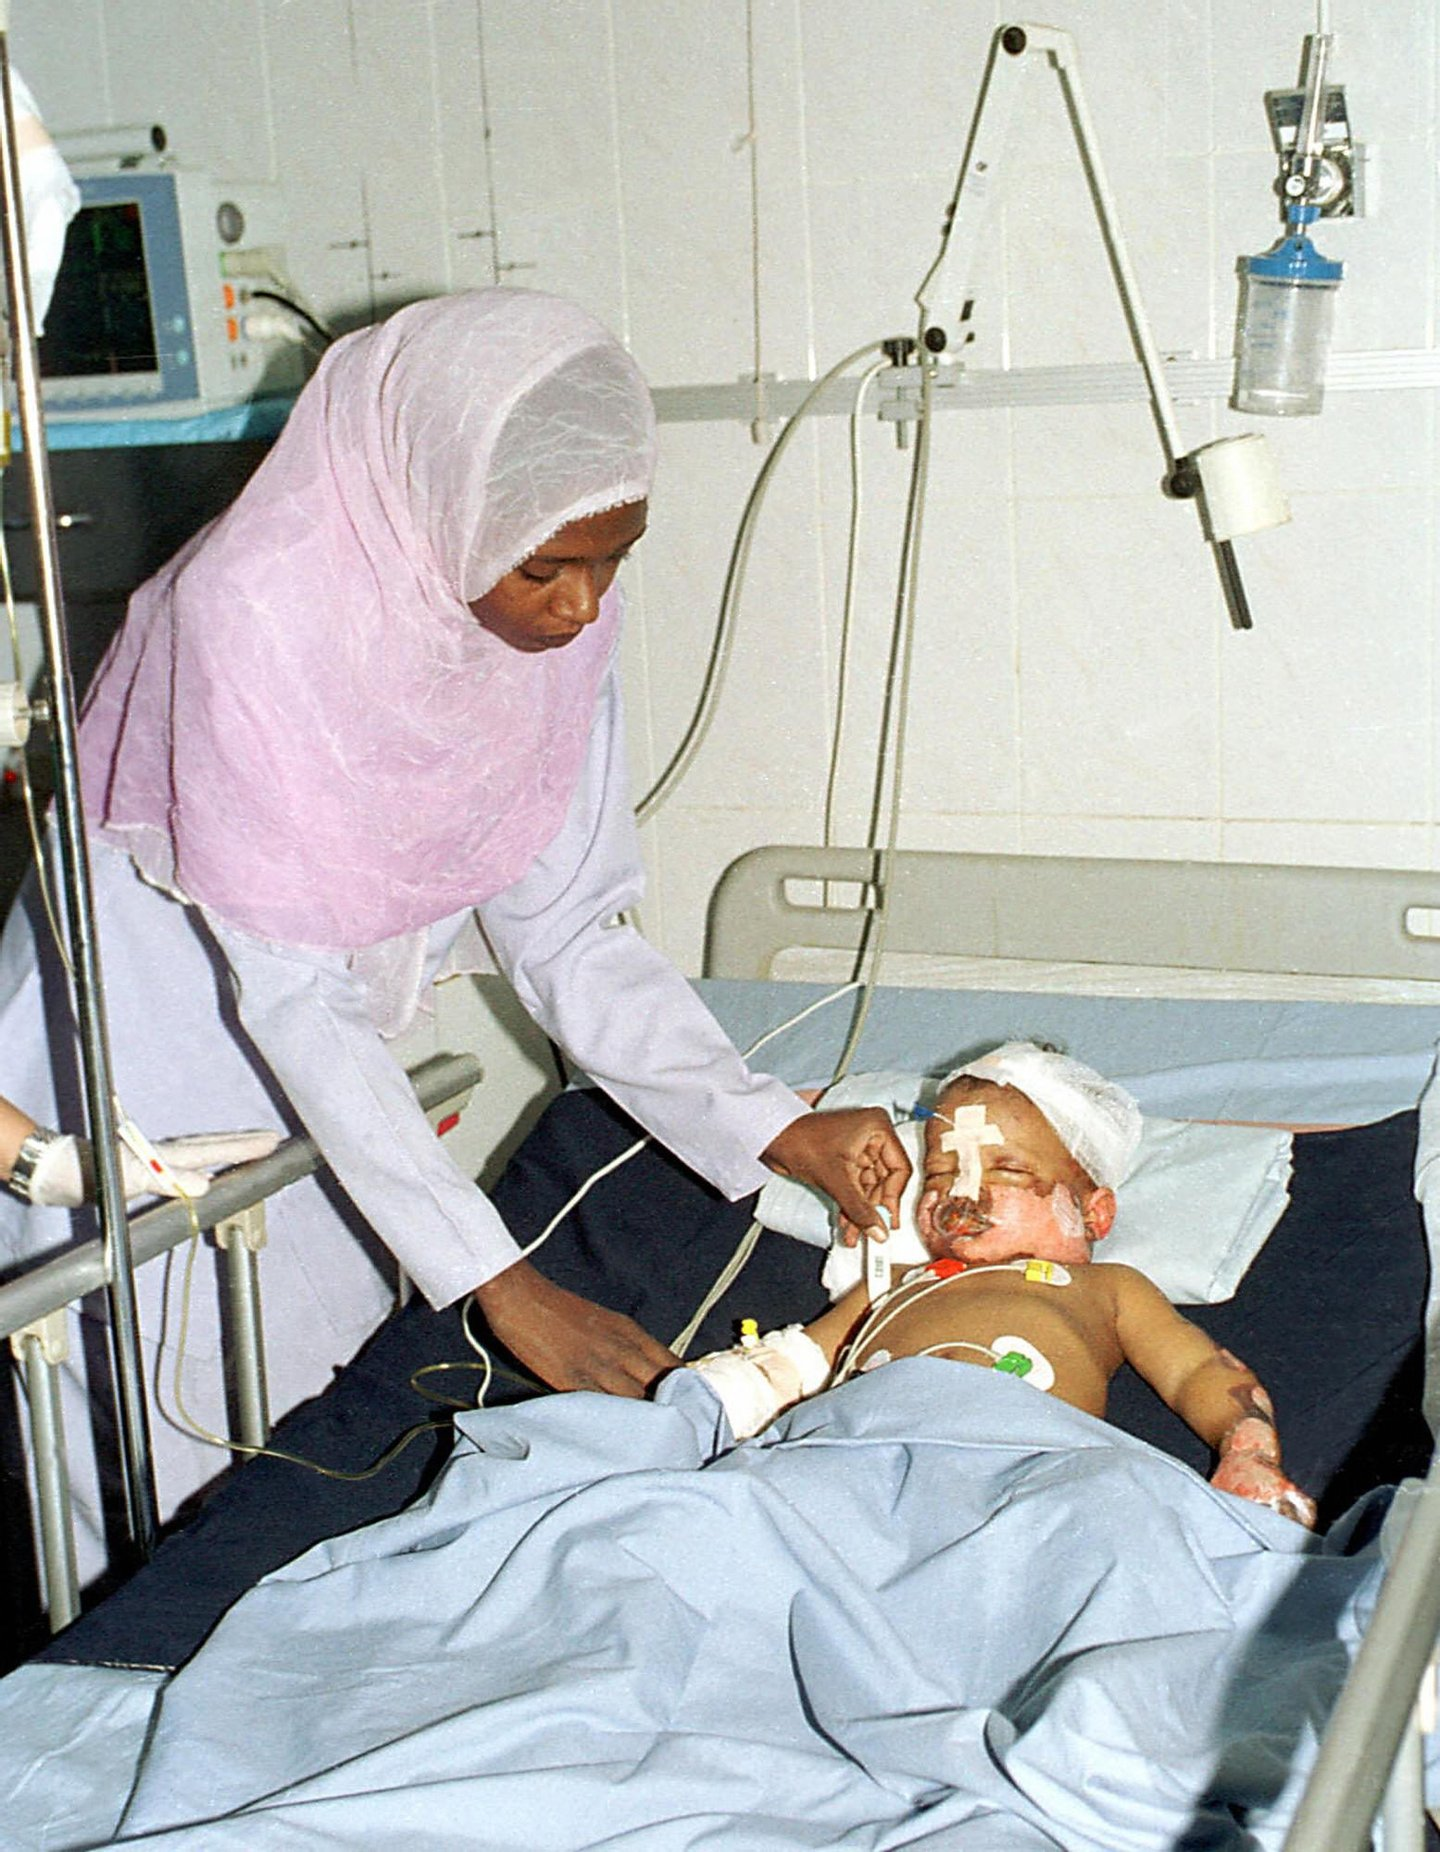 Three-year-old Sudanese boy Mohammed al-Fateh, the sole survivor of a Sudan Airways plane crash near the eastern city of Port Sudan, is treated at a Khartoum hospital 09 July 2003. Doctors were mystified as to how the boy, who was burned and lost part of a leg, had survived the previous day's crash near Sudan's Red Sea coast, speculating that he was thrown clear of the plane on a piece of wreckage and may have landed on a bush. The Sudan Airways Boeing 737 was destroyed in a ball of fire as it attempted to land back at Port Sudan after apparently suffering an engine problem soon after takeoff. (Film) AFP PHOTO/Salah OMAR (Photo credit should read SALAH OMAR/AFP/Getty Images)